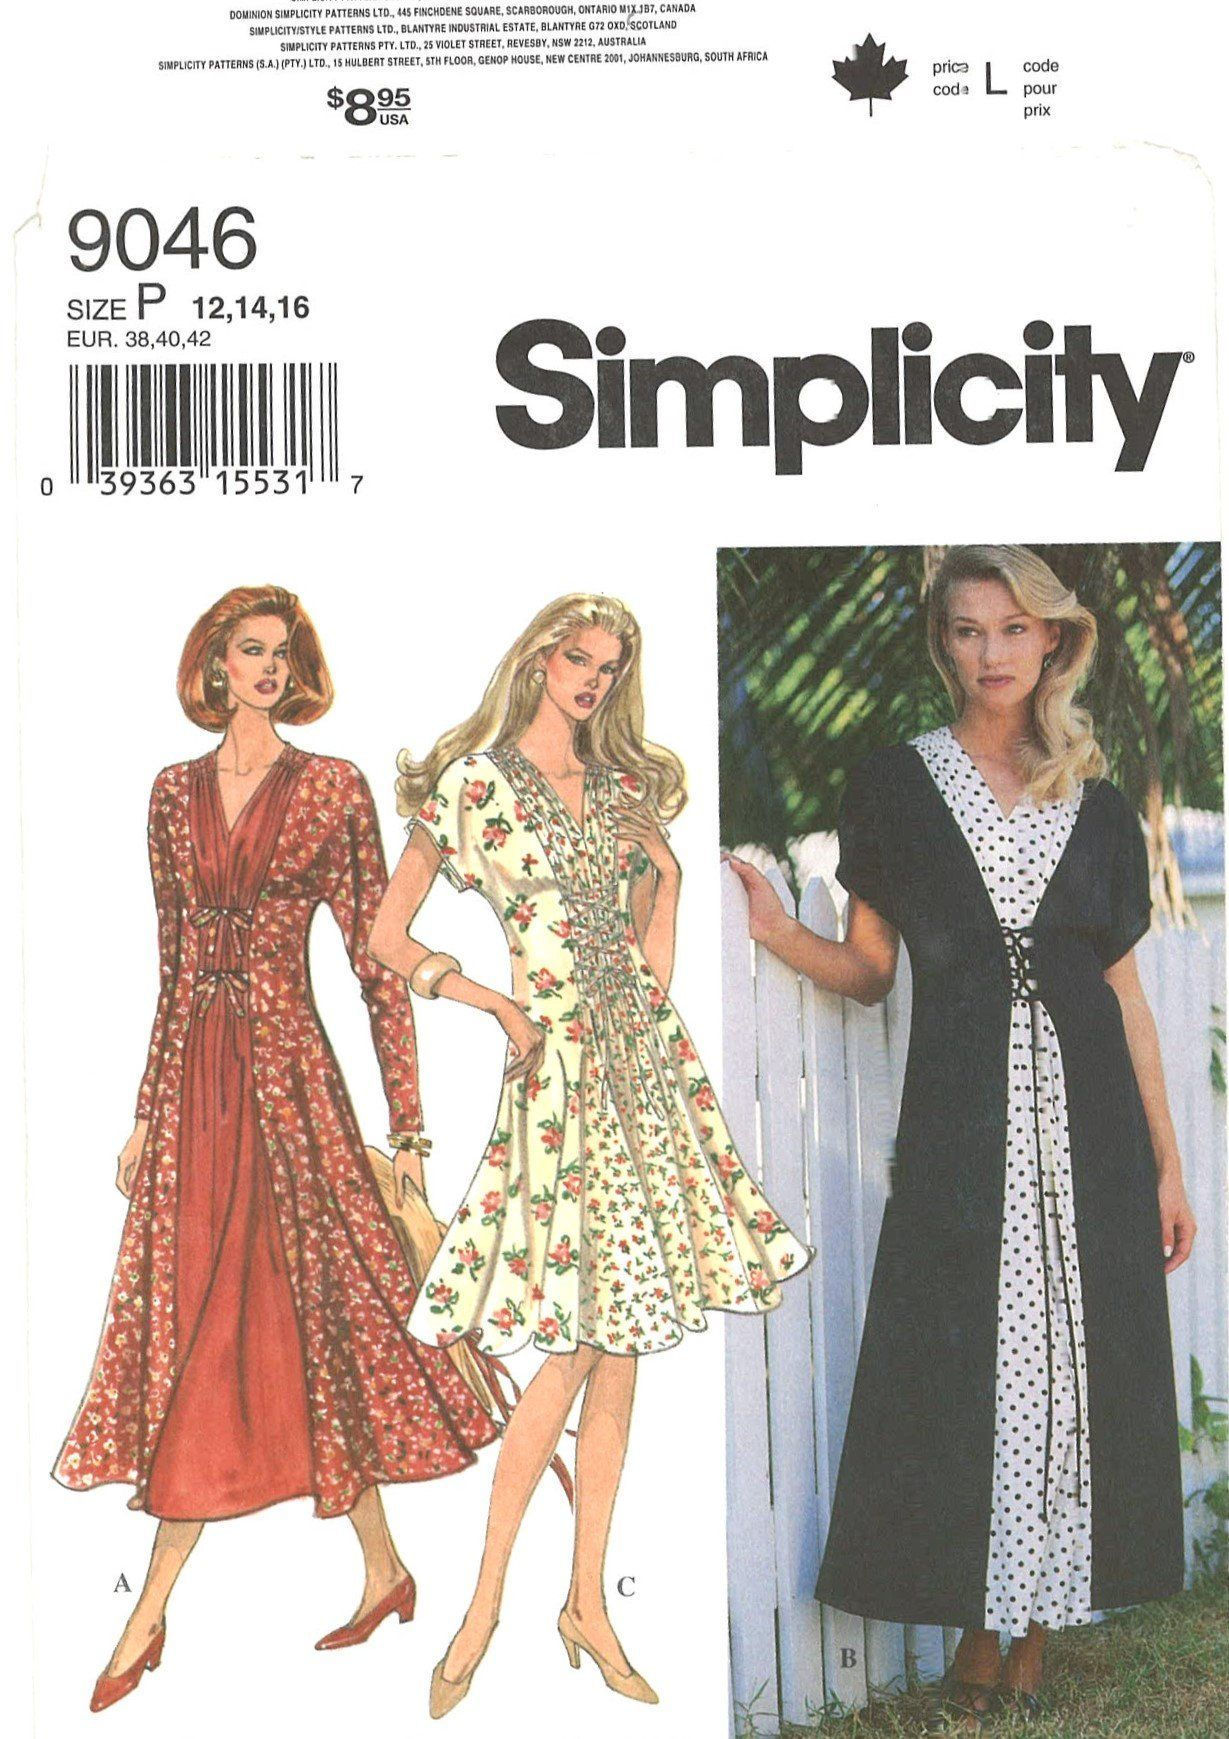 Simplicity 9046 Misses Princess Seam Dress Sewing Pattern Uncut Factory Fold By W2ml On Etsy Clothes For Women Princess Seam Dress Vintage Fashion